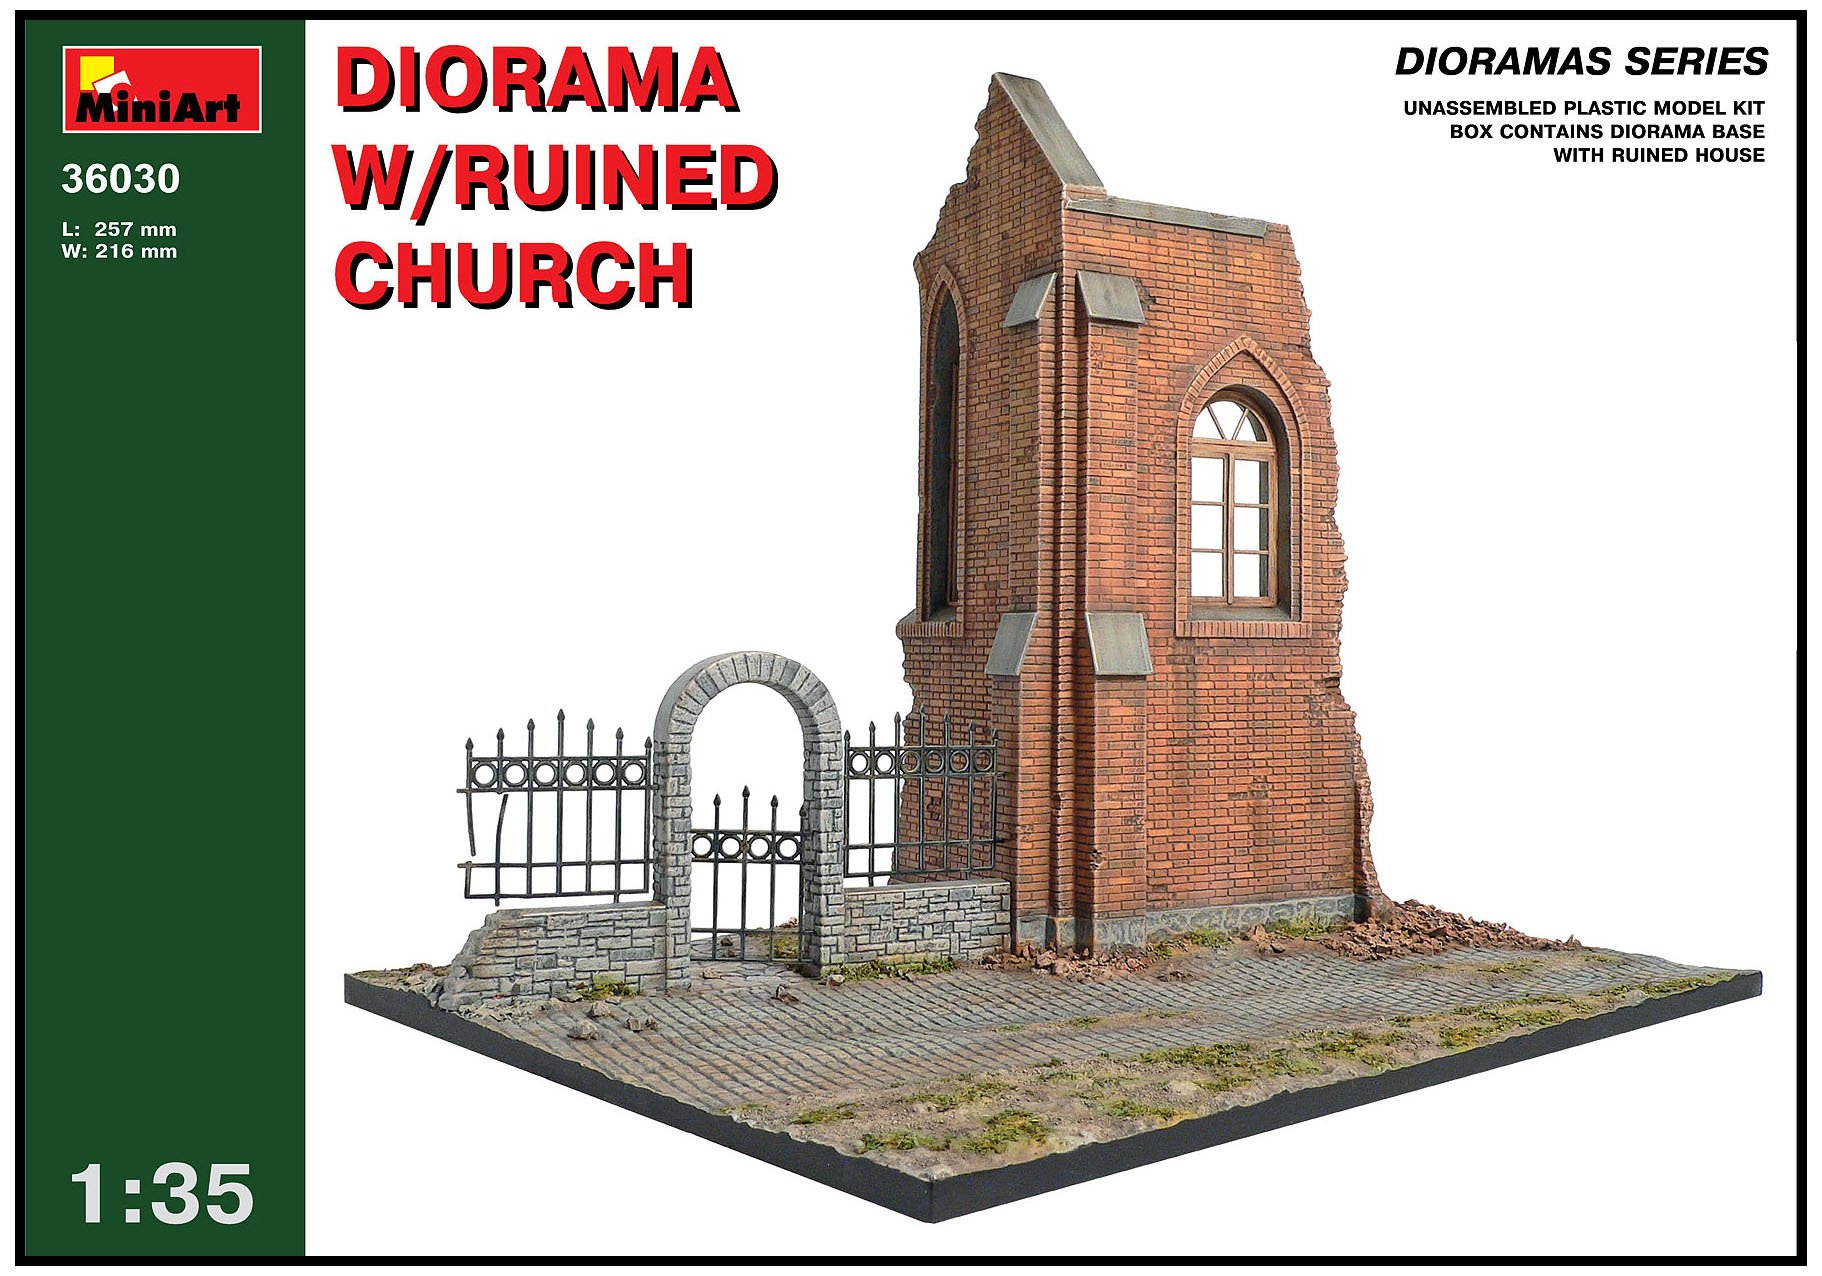 MiniArt 1:35 Scale Diorama with Ruined Church Plastic Model Kit (Grey)